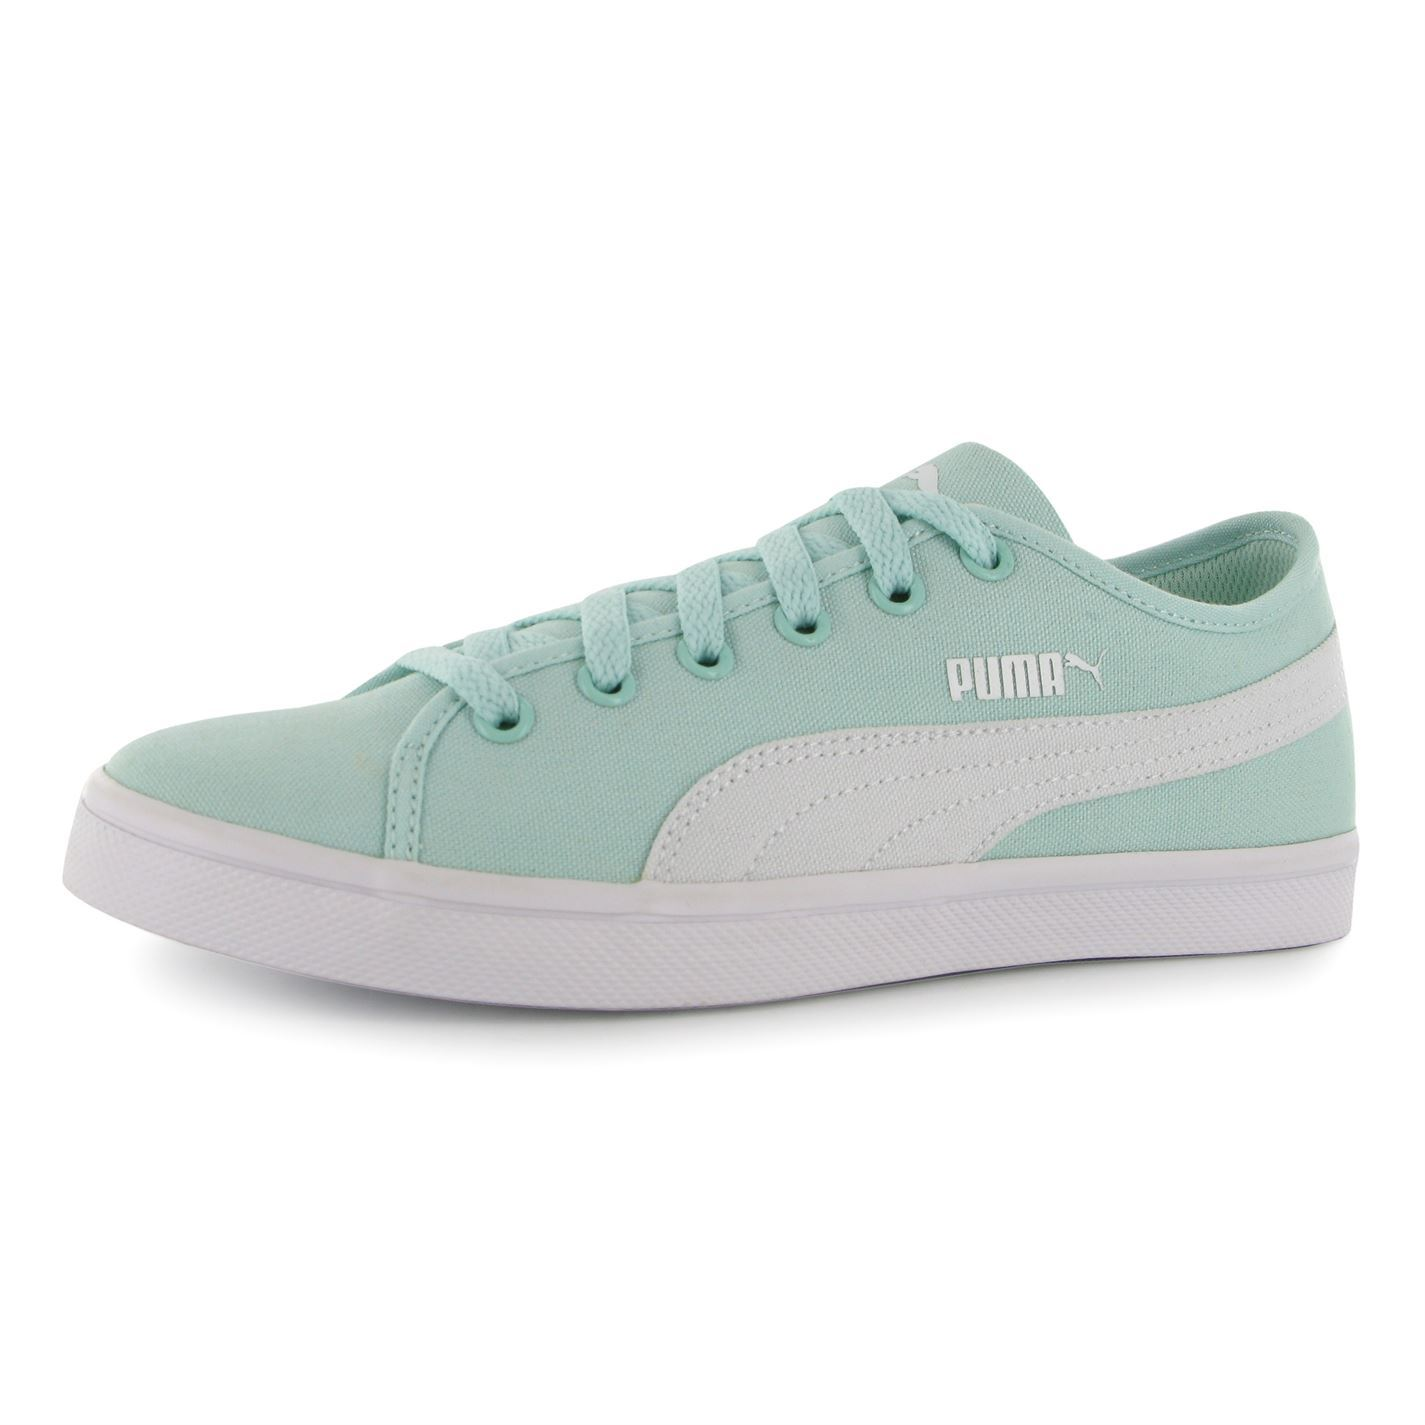 Puma Vikky Canvas Sneaker Bab C Bed A Ceecdfe